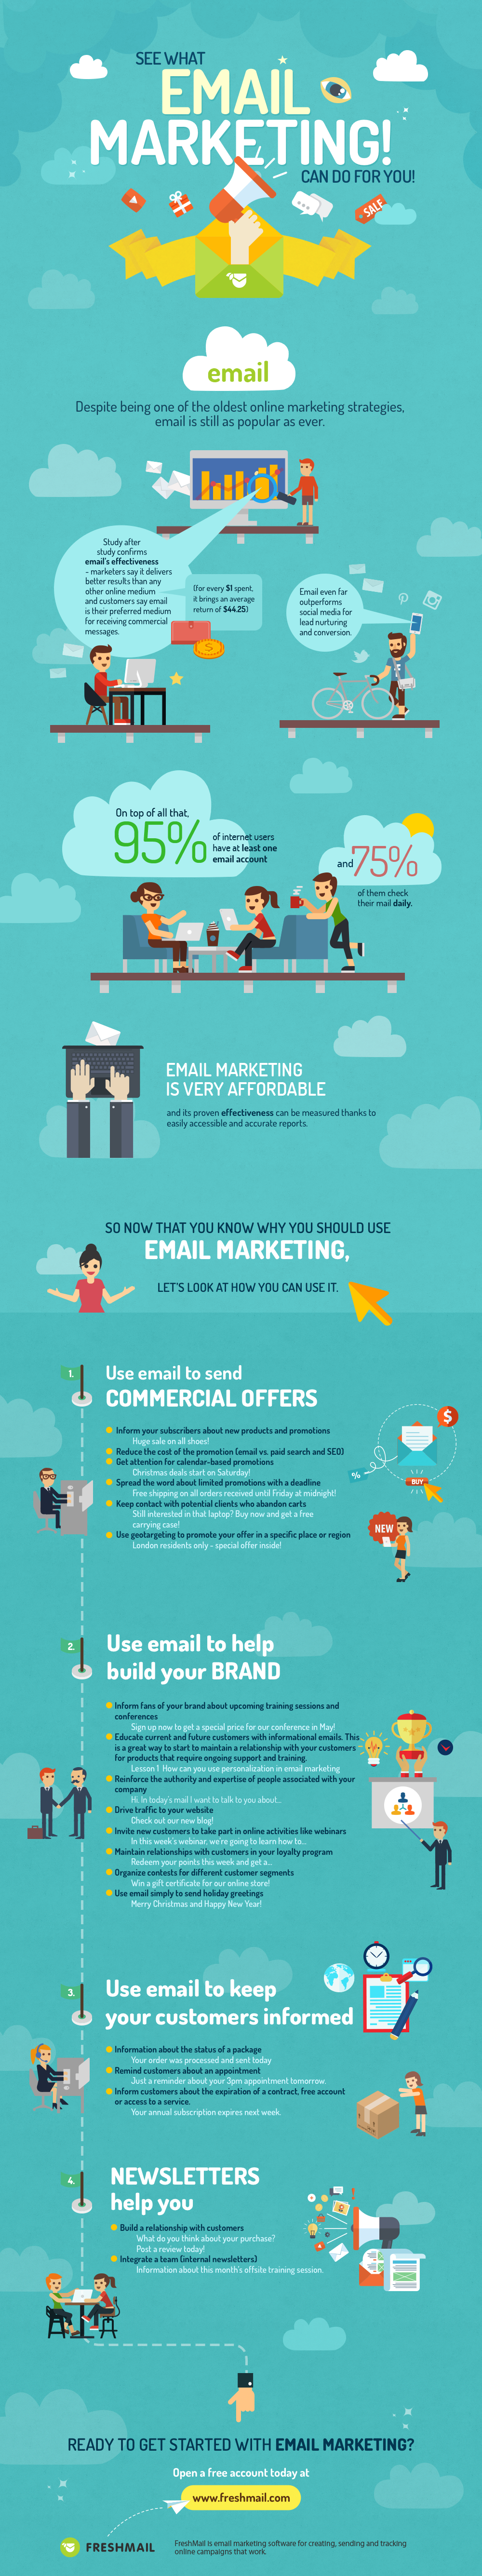 See What Email Marketing Can Do For You